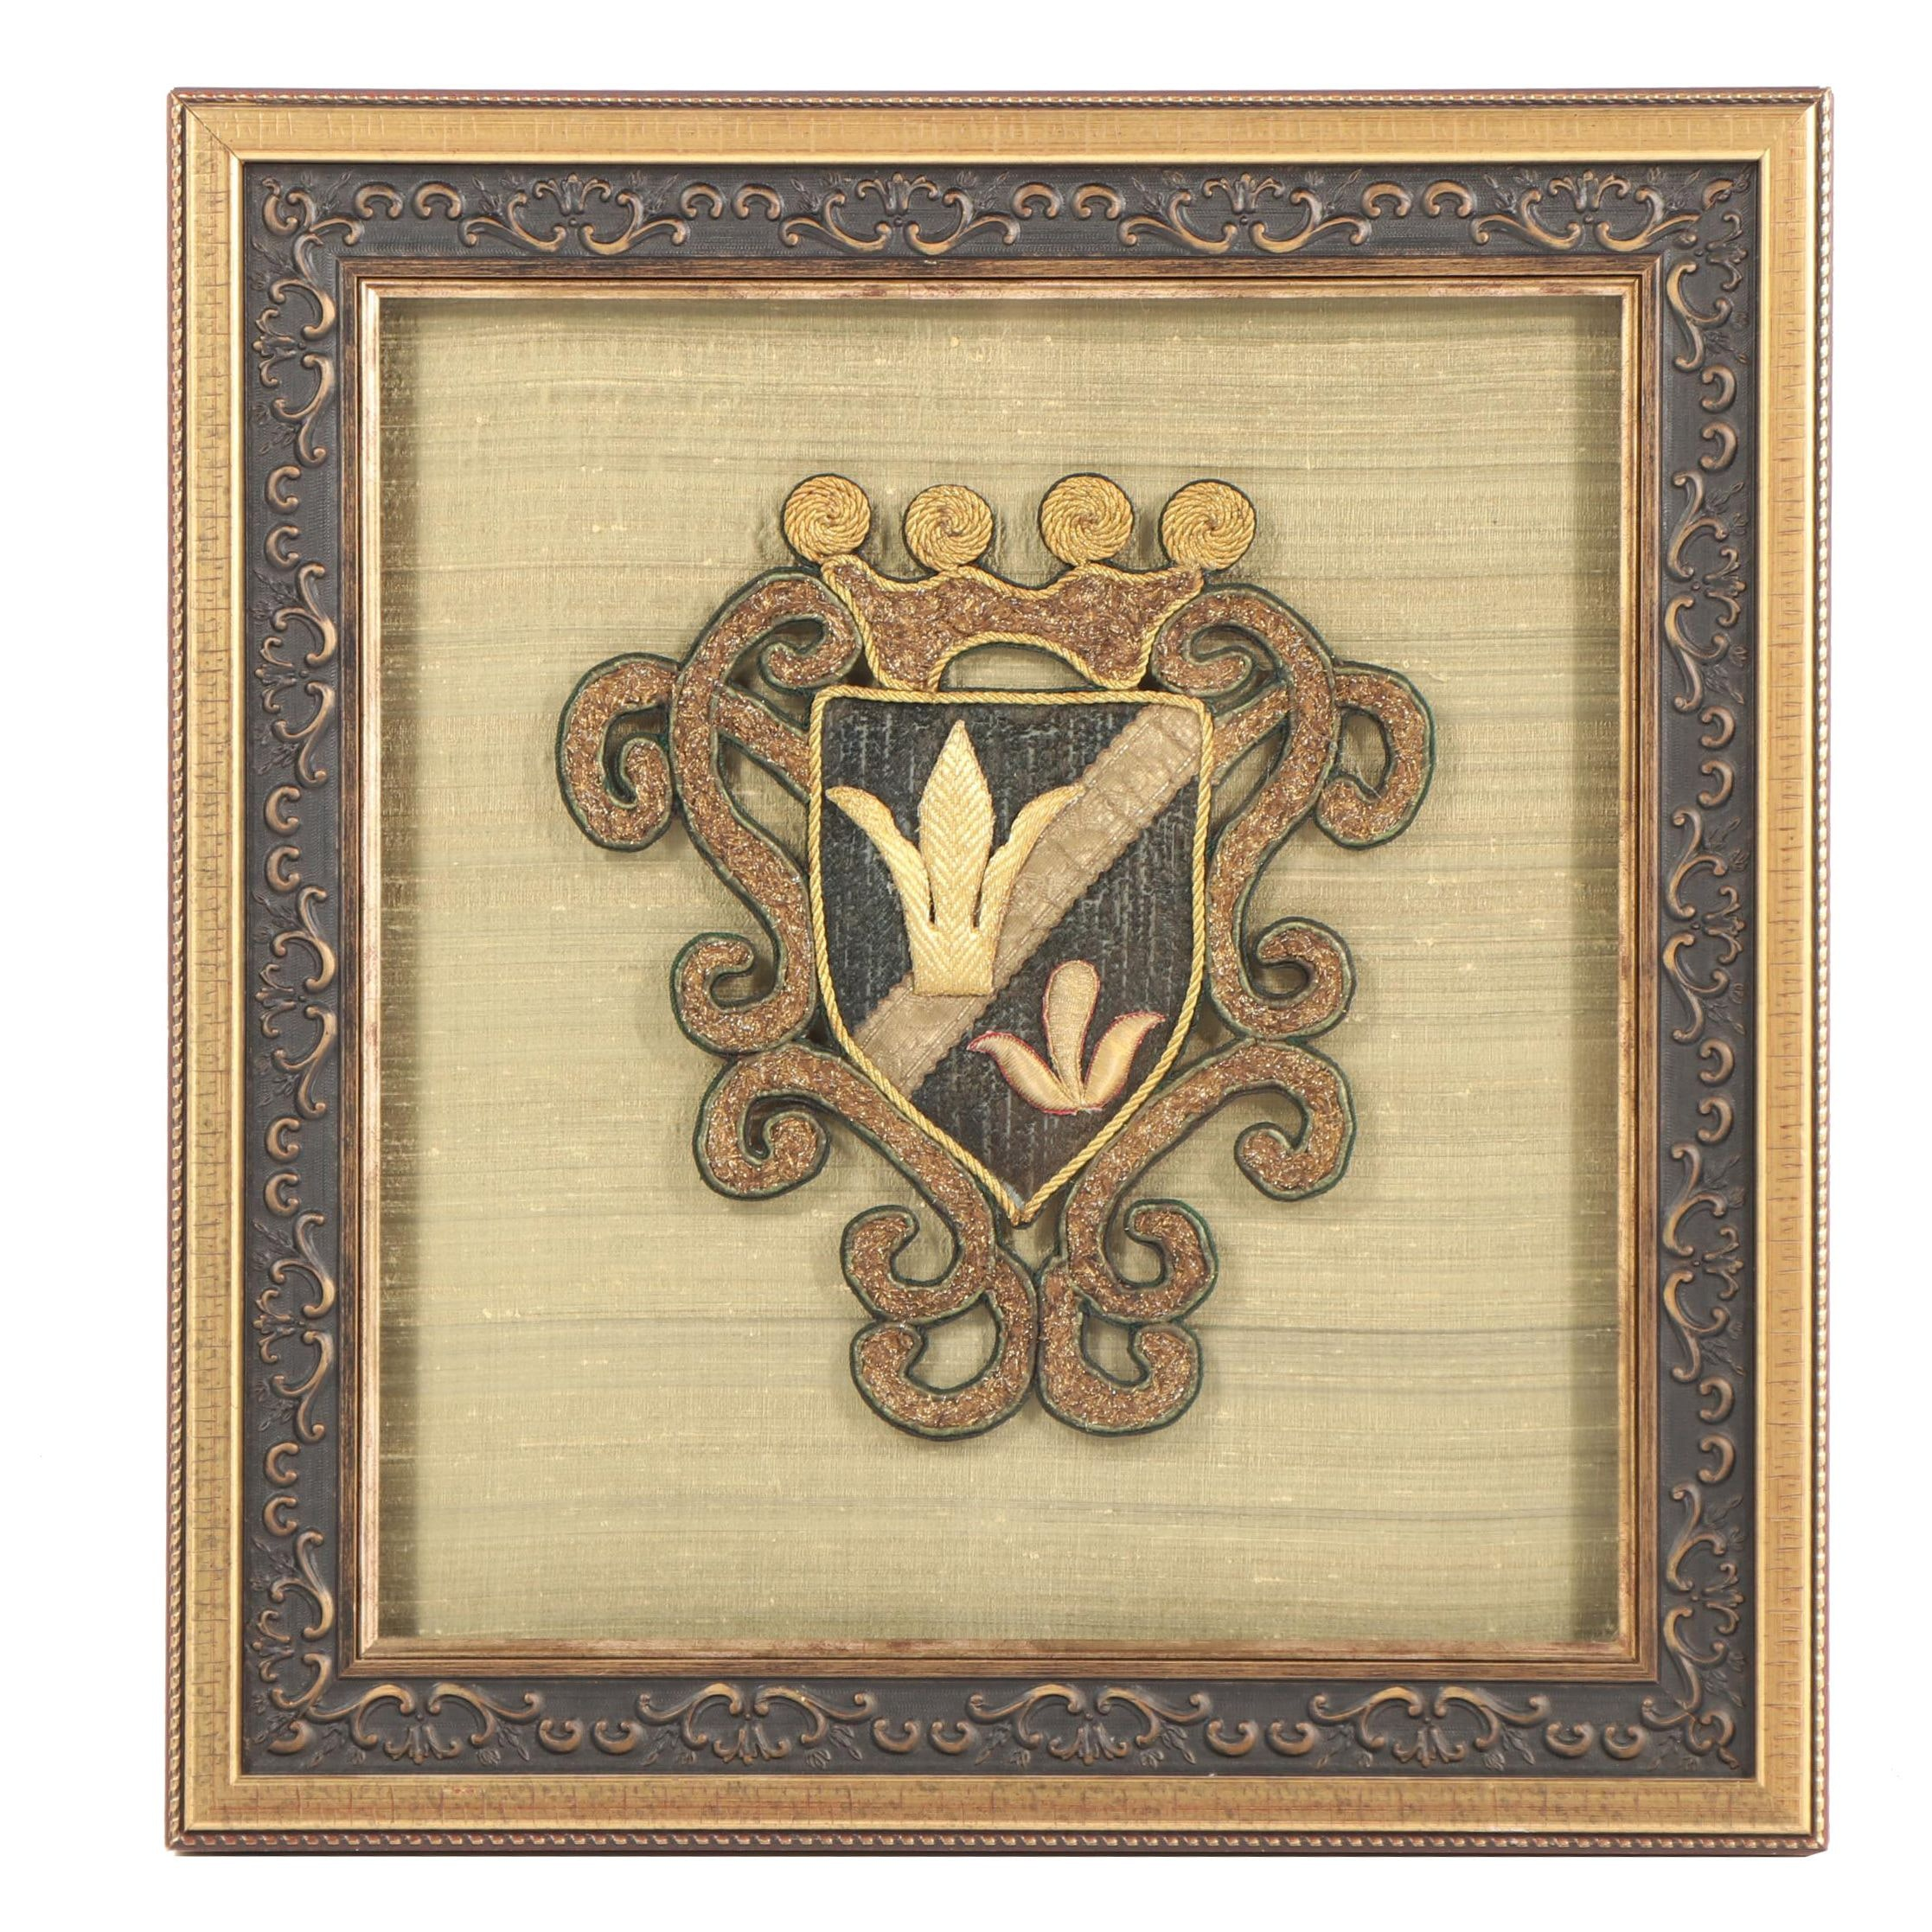 Coat of Arms Textile in Shadowbox Frame